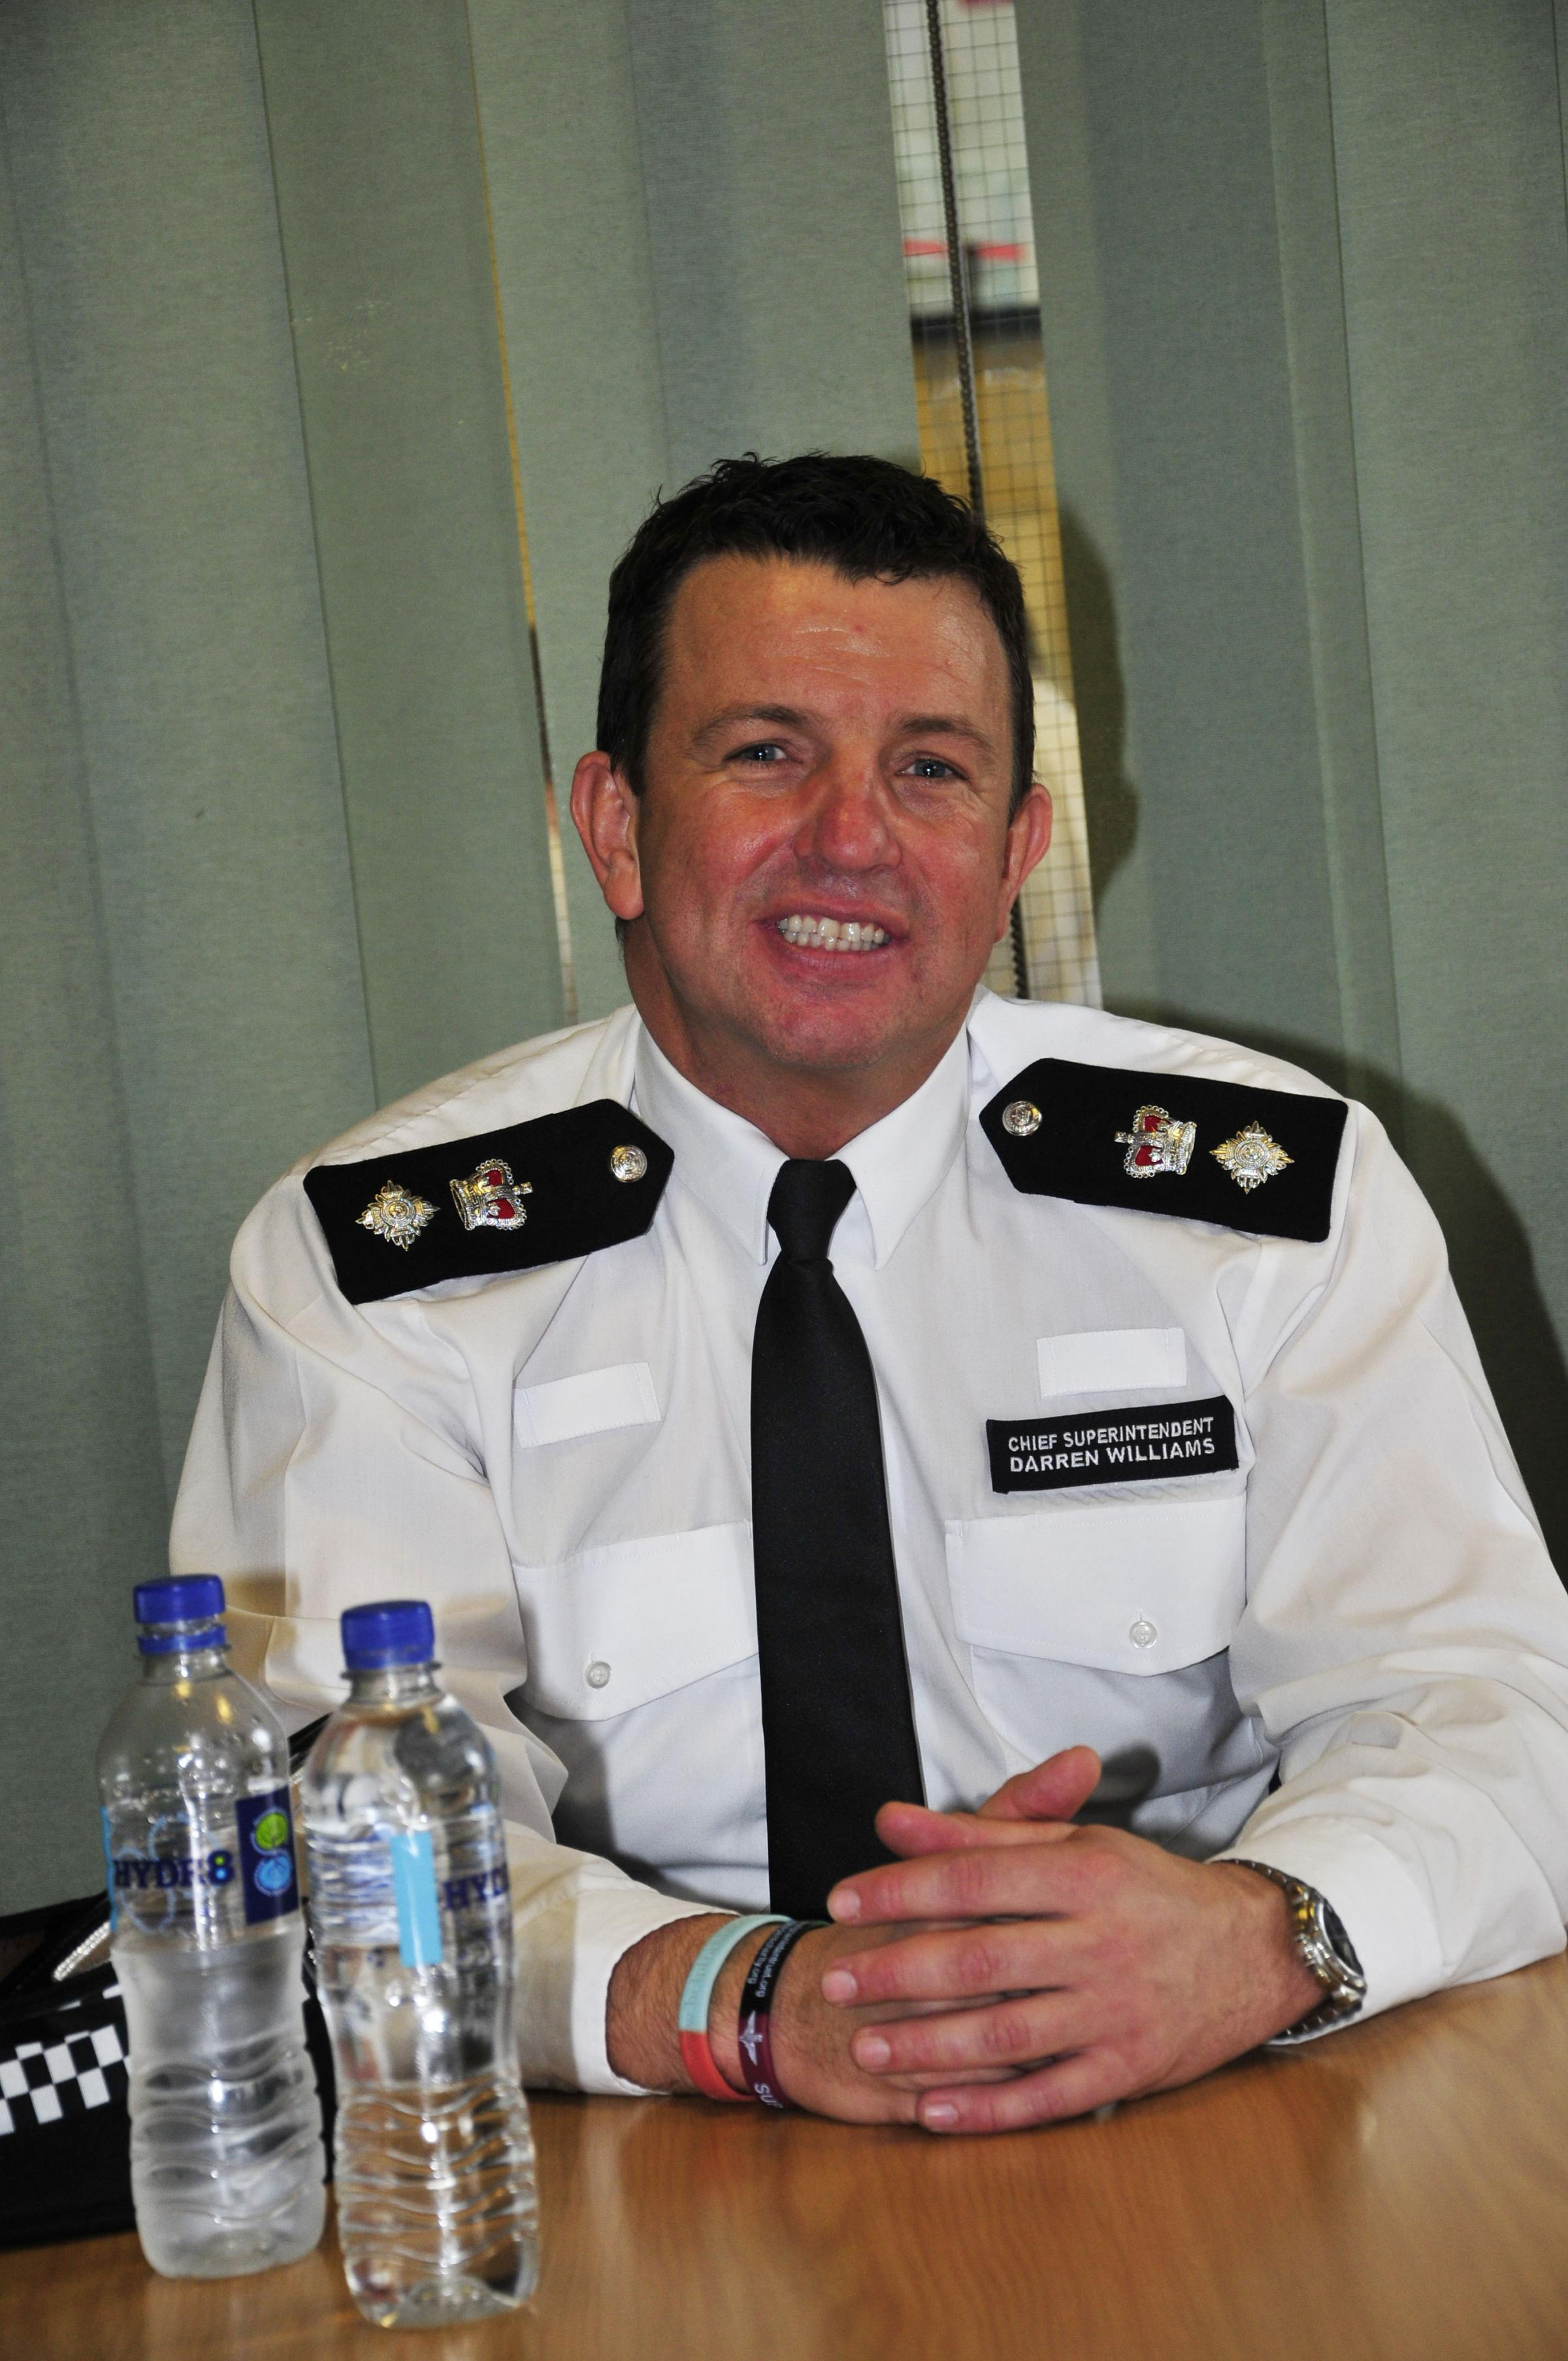 Suspended on full pay: Chief Superintendent Darren Williams